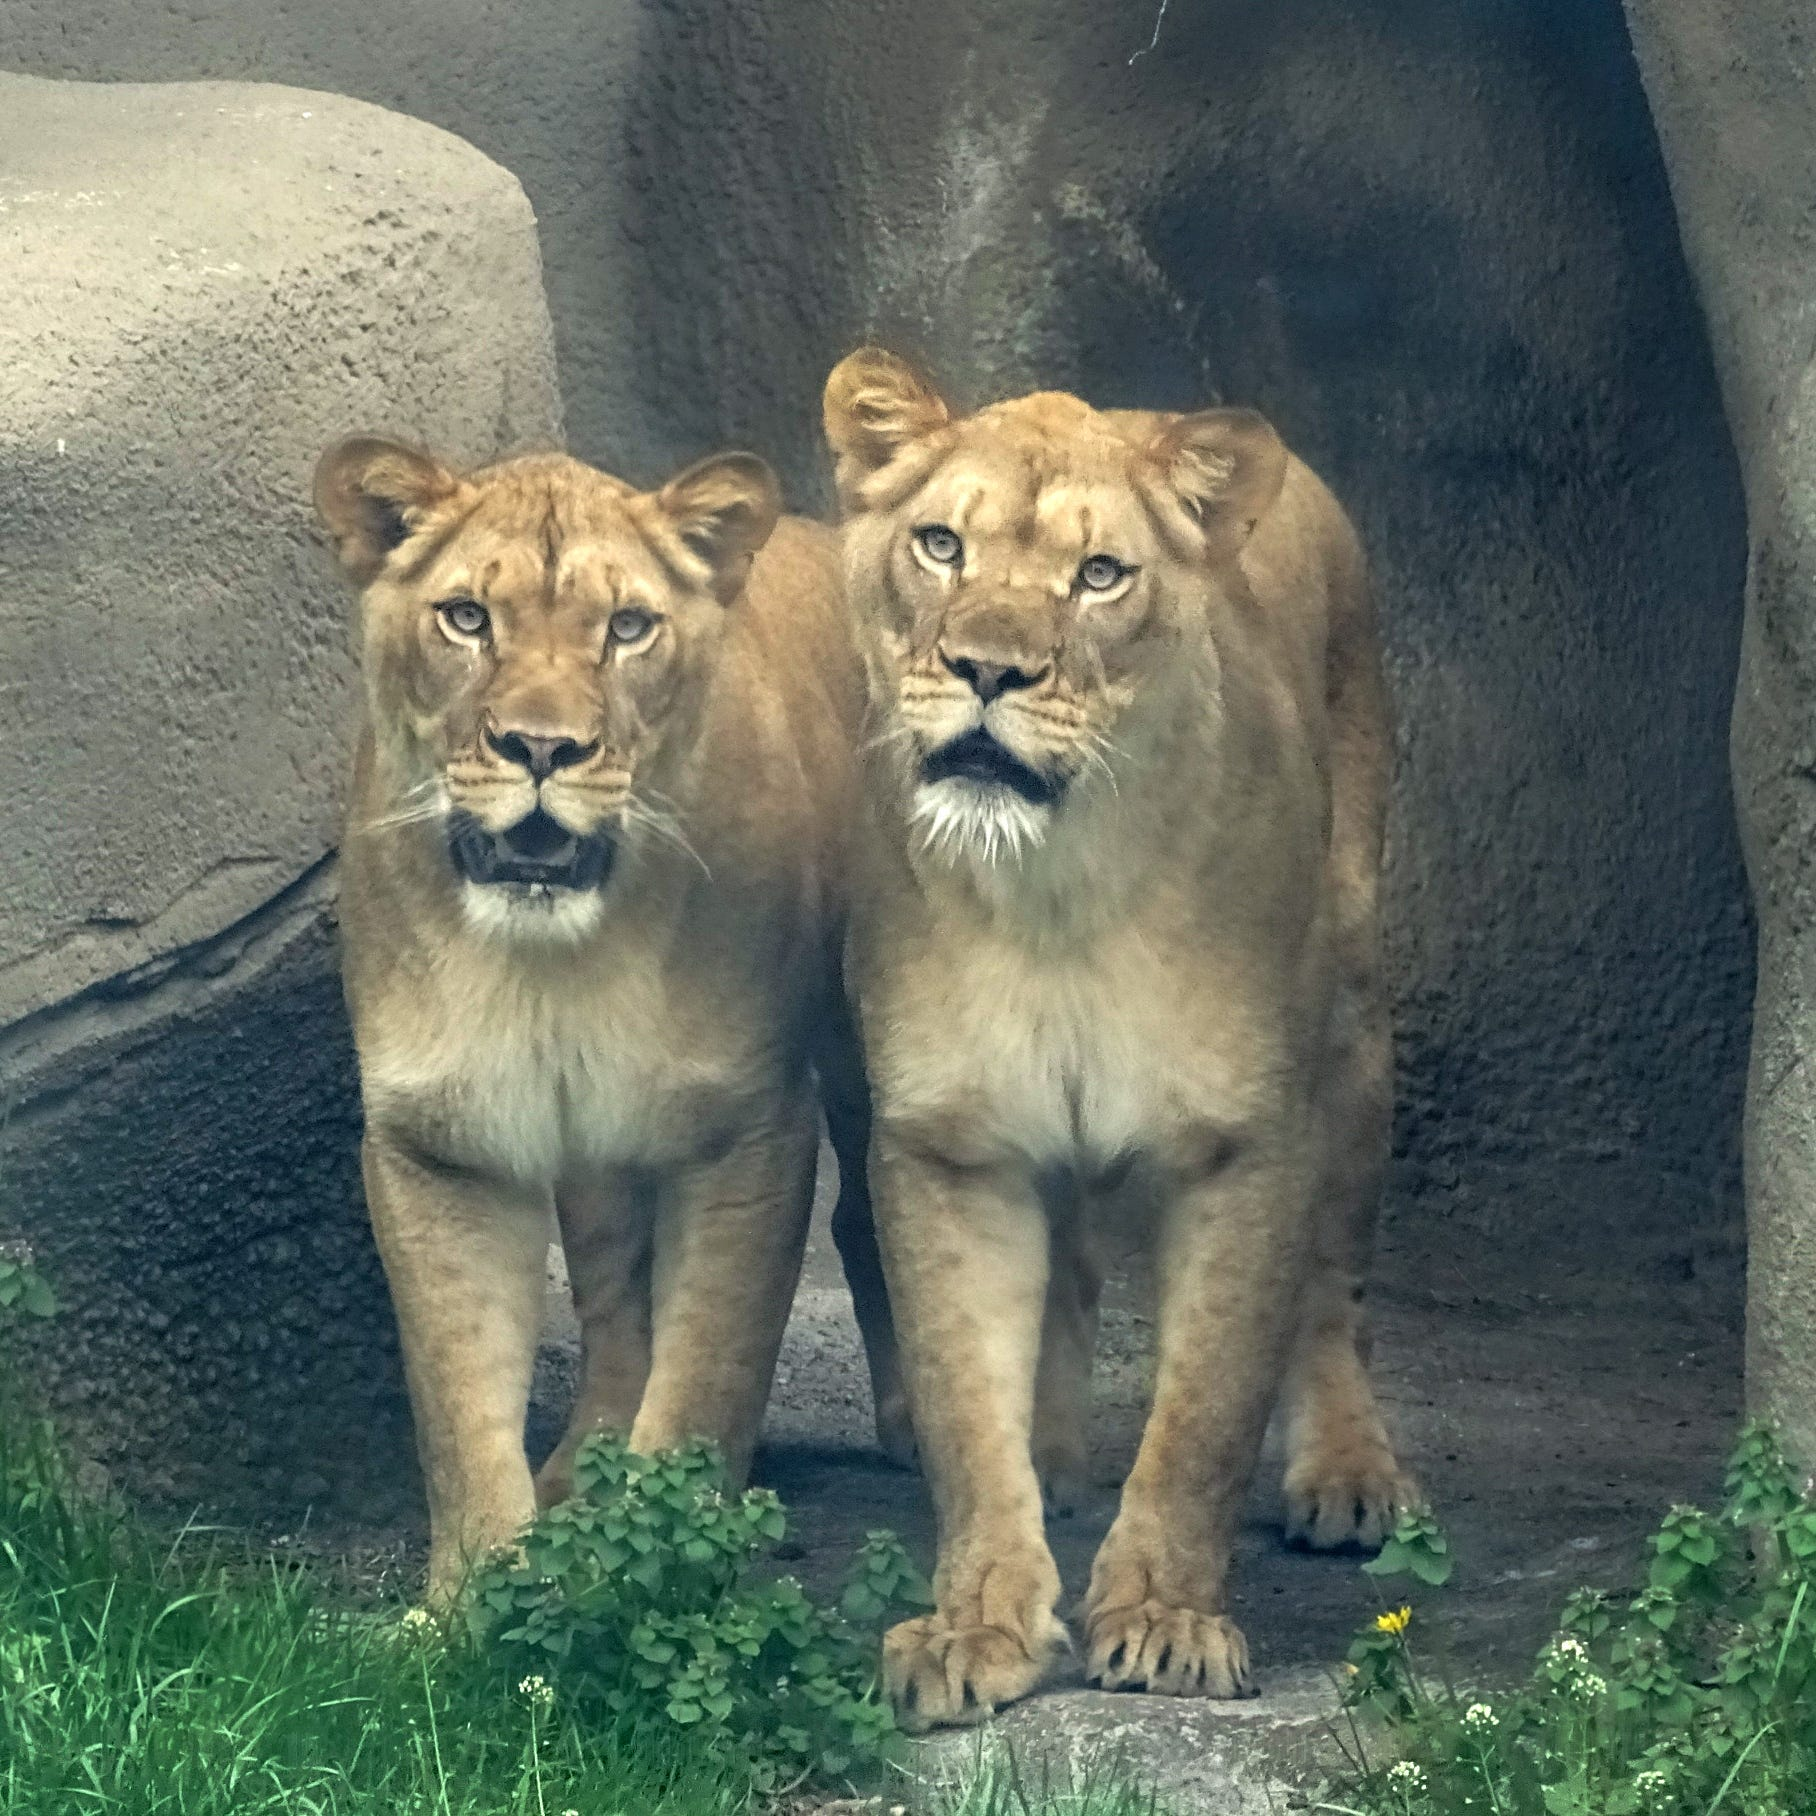 Detroit Zoo adds 2 new lions to den in hopes of making new lion cubs